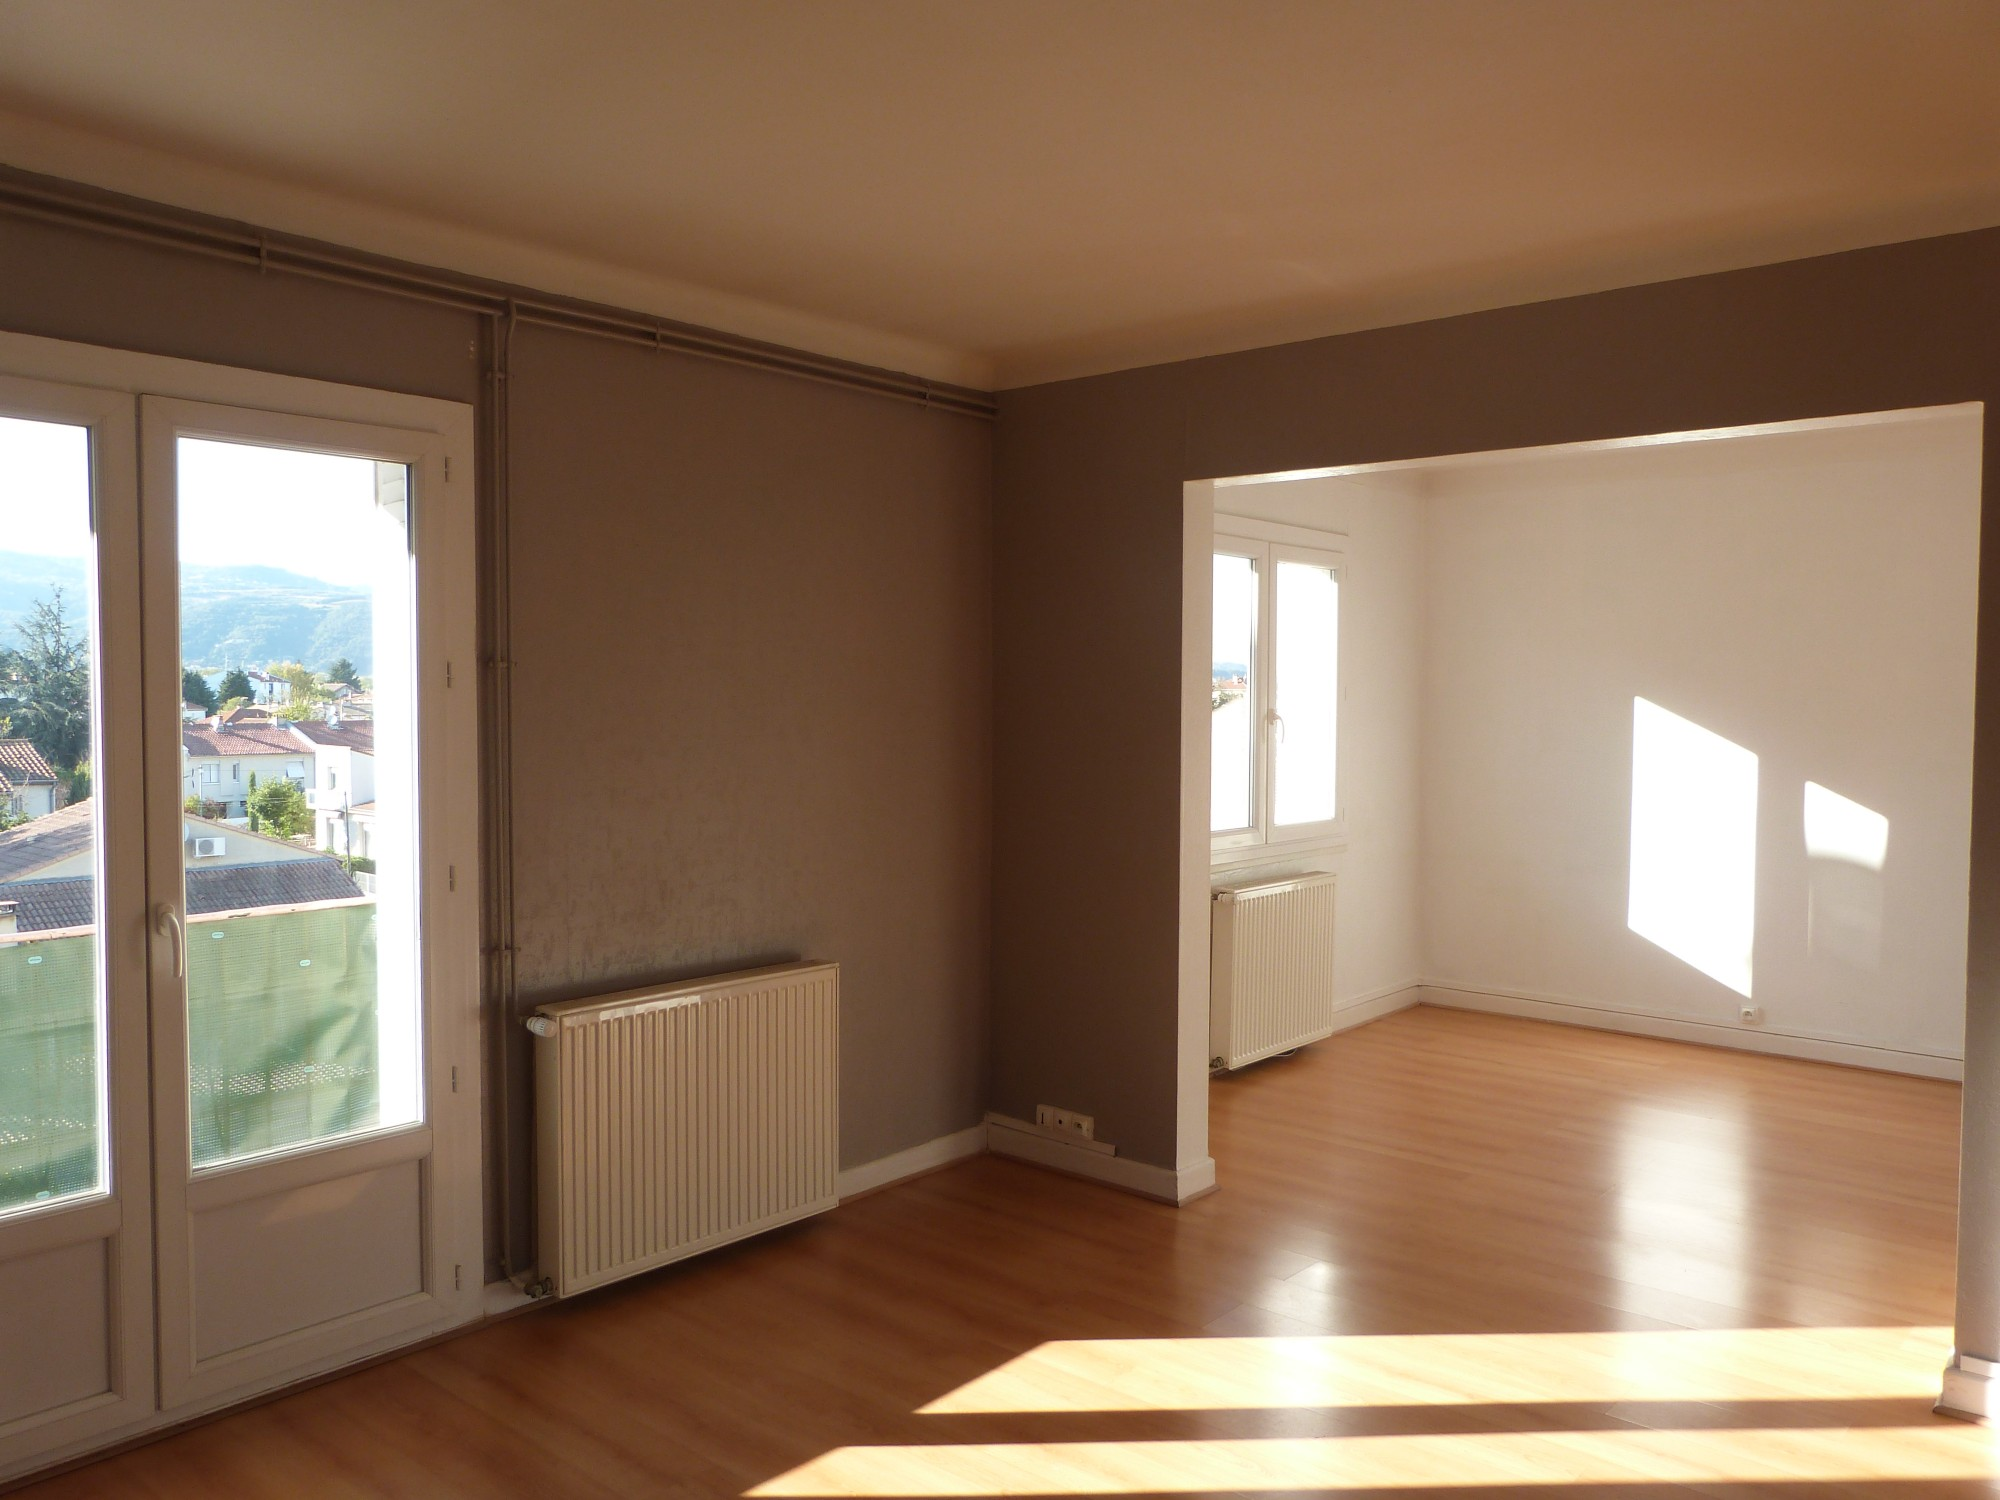 Location appartement sur guilherand granges centre location agence immobili re valence - Appartement guilherand granges ...